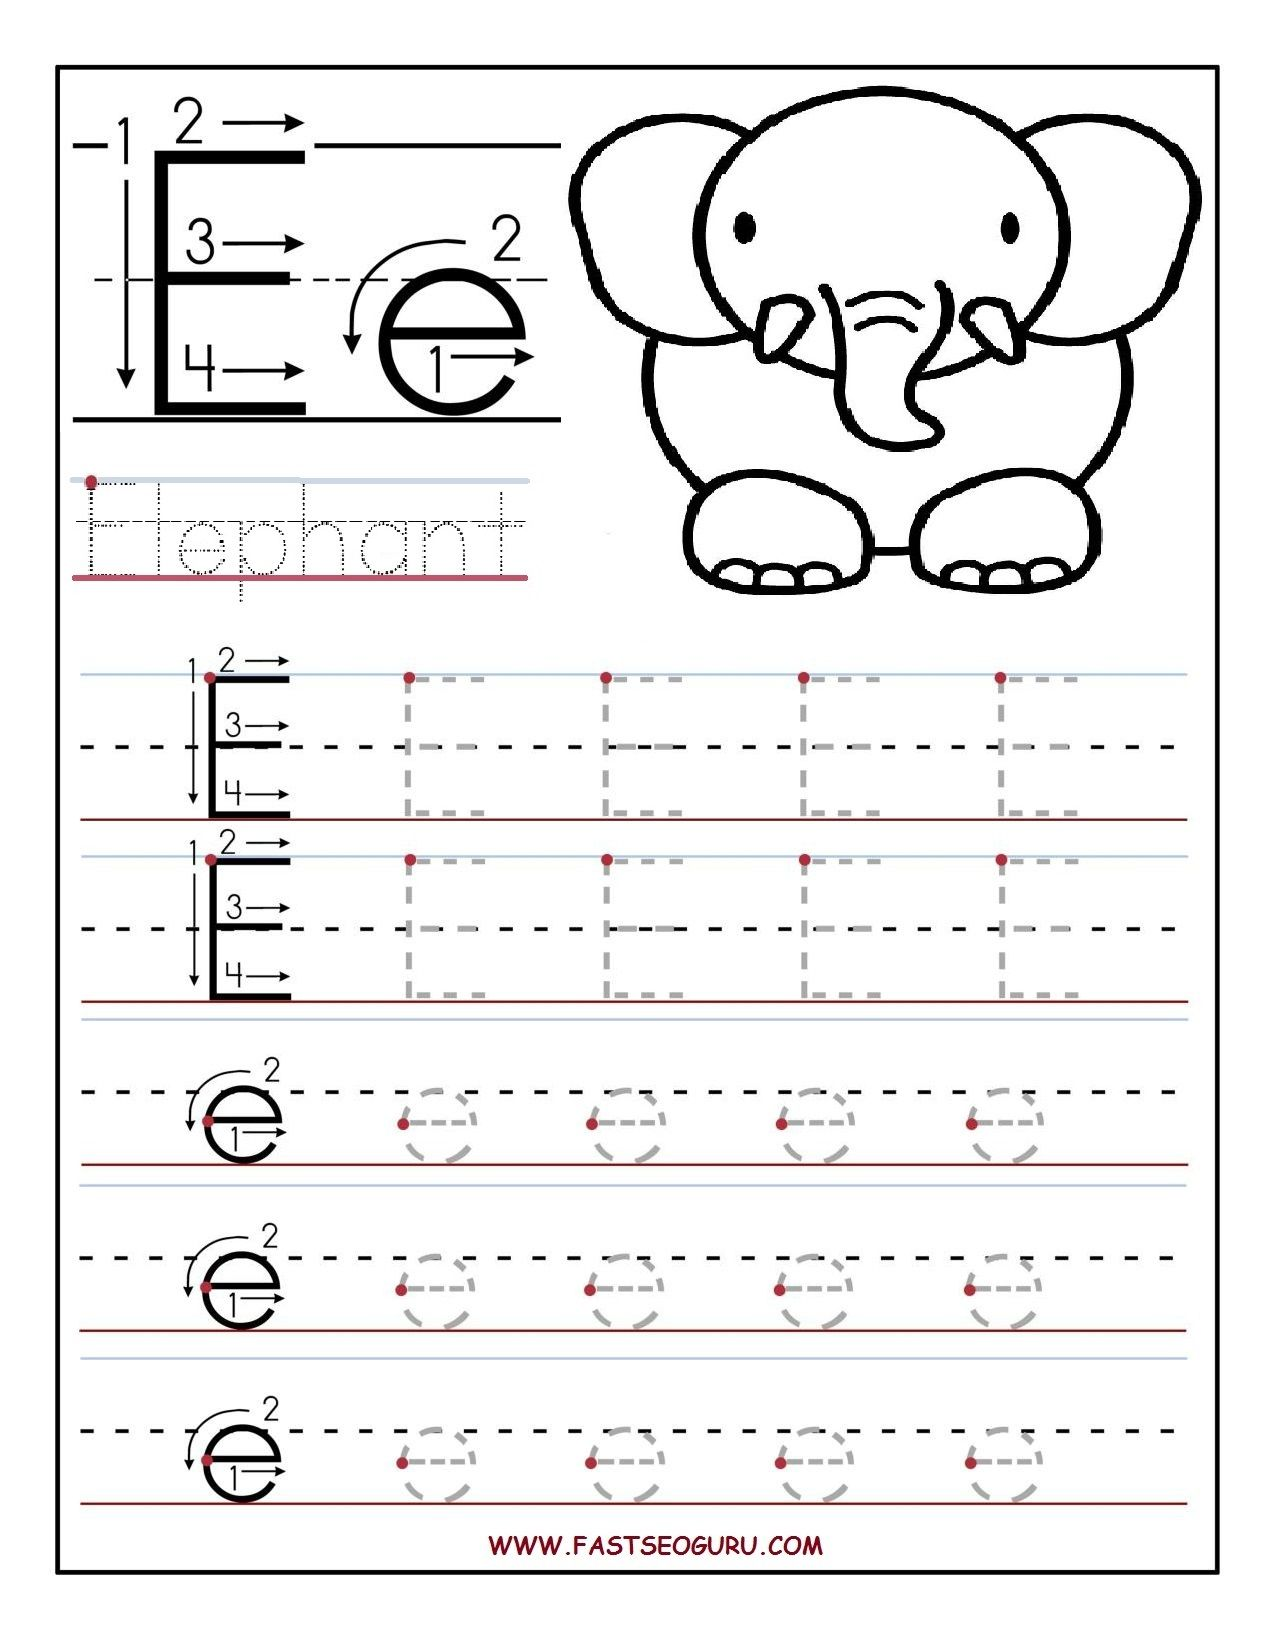 Printable letter E tracing worksheets for preschool | Alfabetização ...